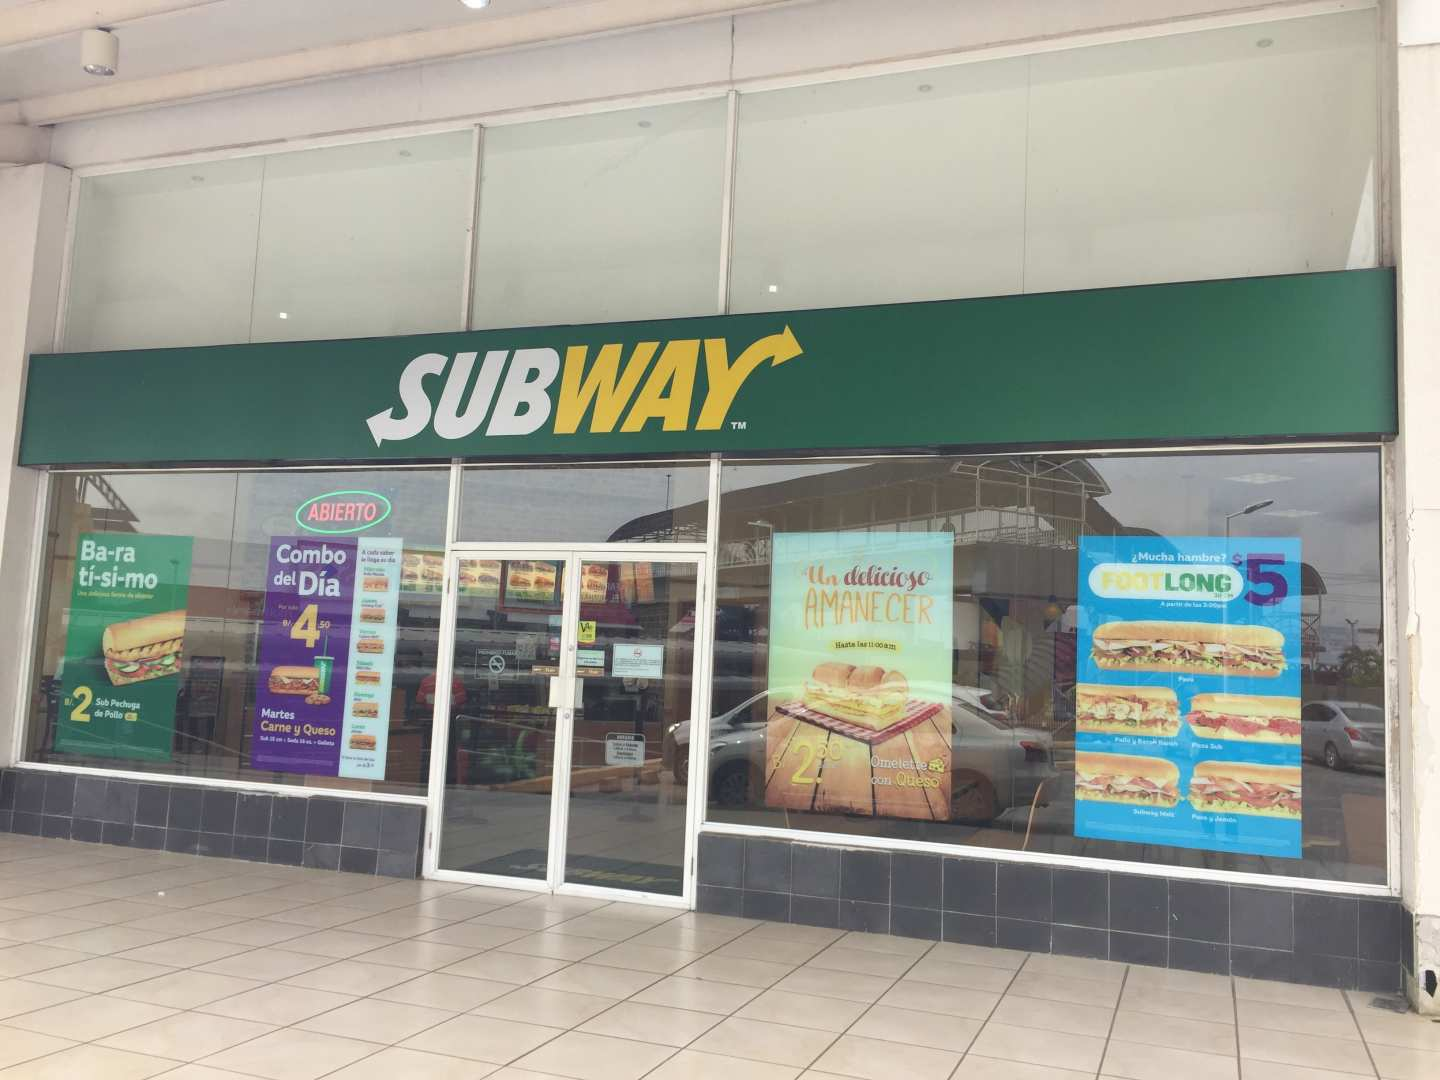 Subway (Juan Diaz)